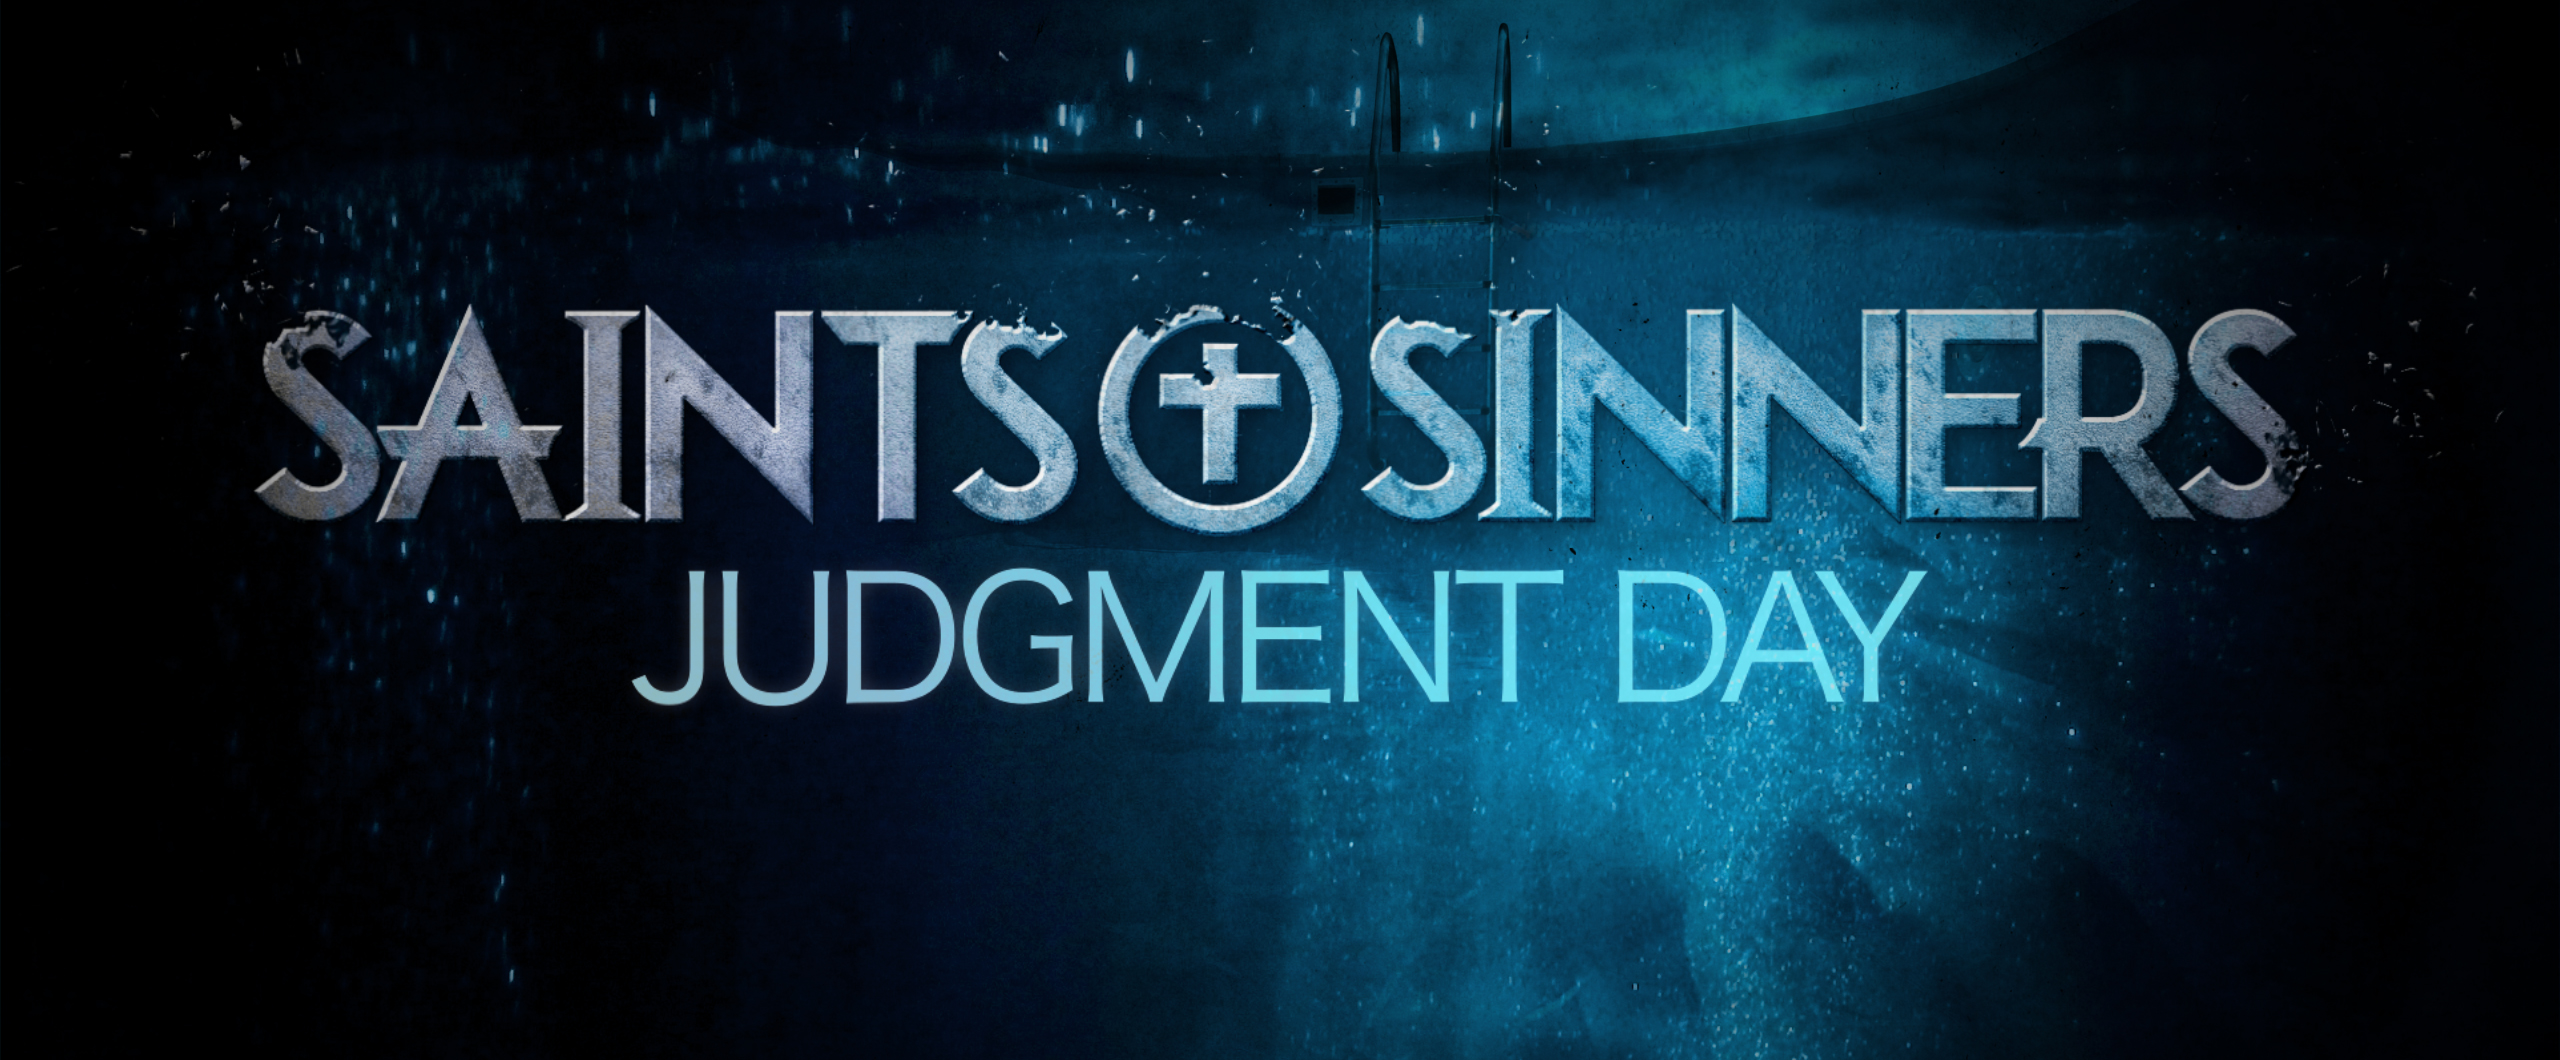 Saints and Sinner: Judgment Day Movie